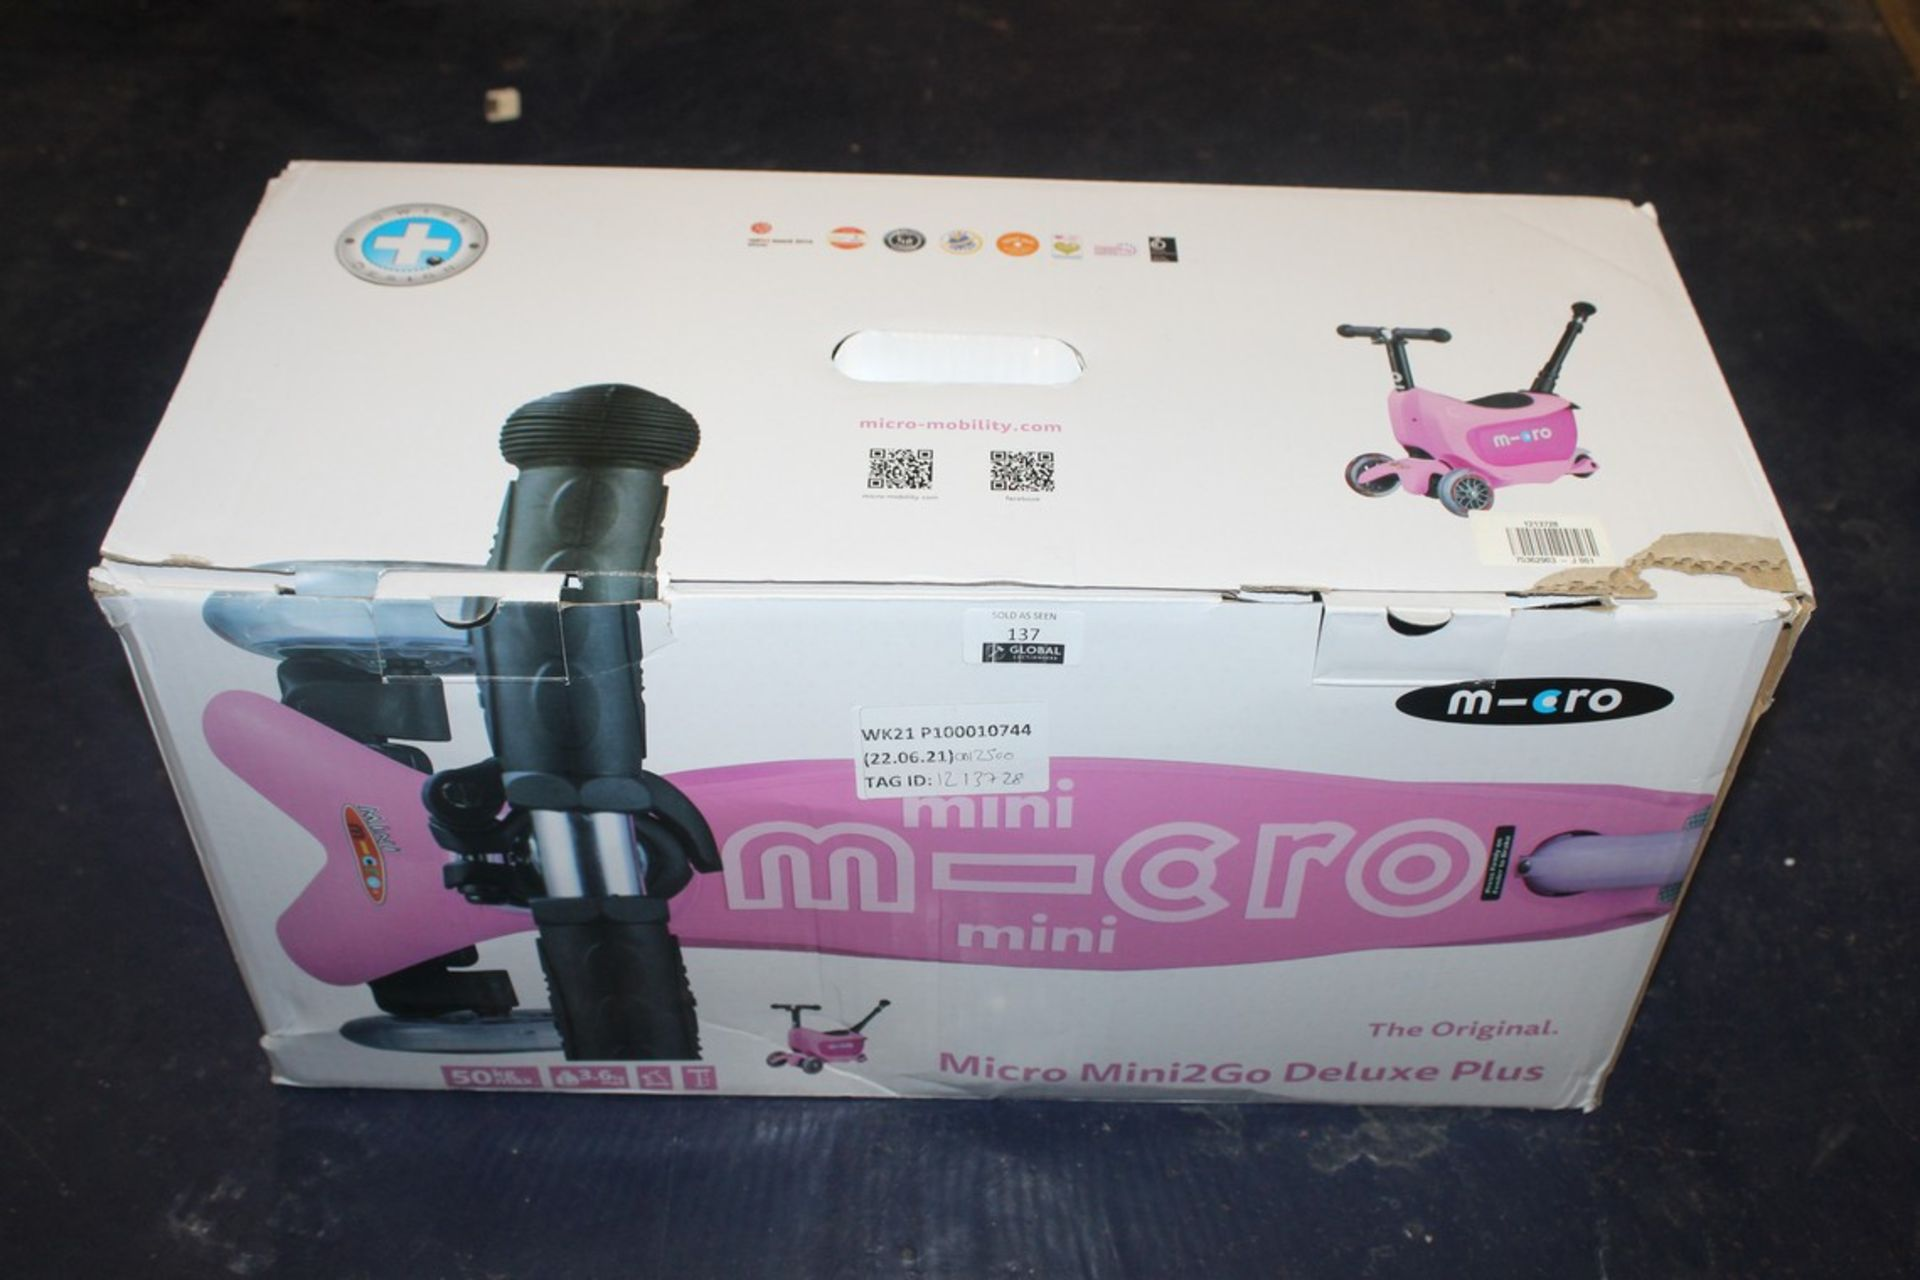 Lot 137 - Boxed Mini Micro Original Mini To Go Deluxe Scooter RRP £125 (1213728) (Pictures Are For